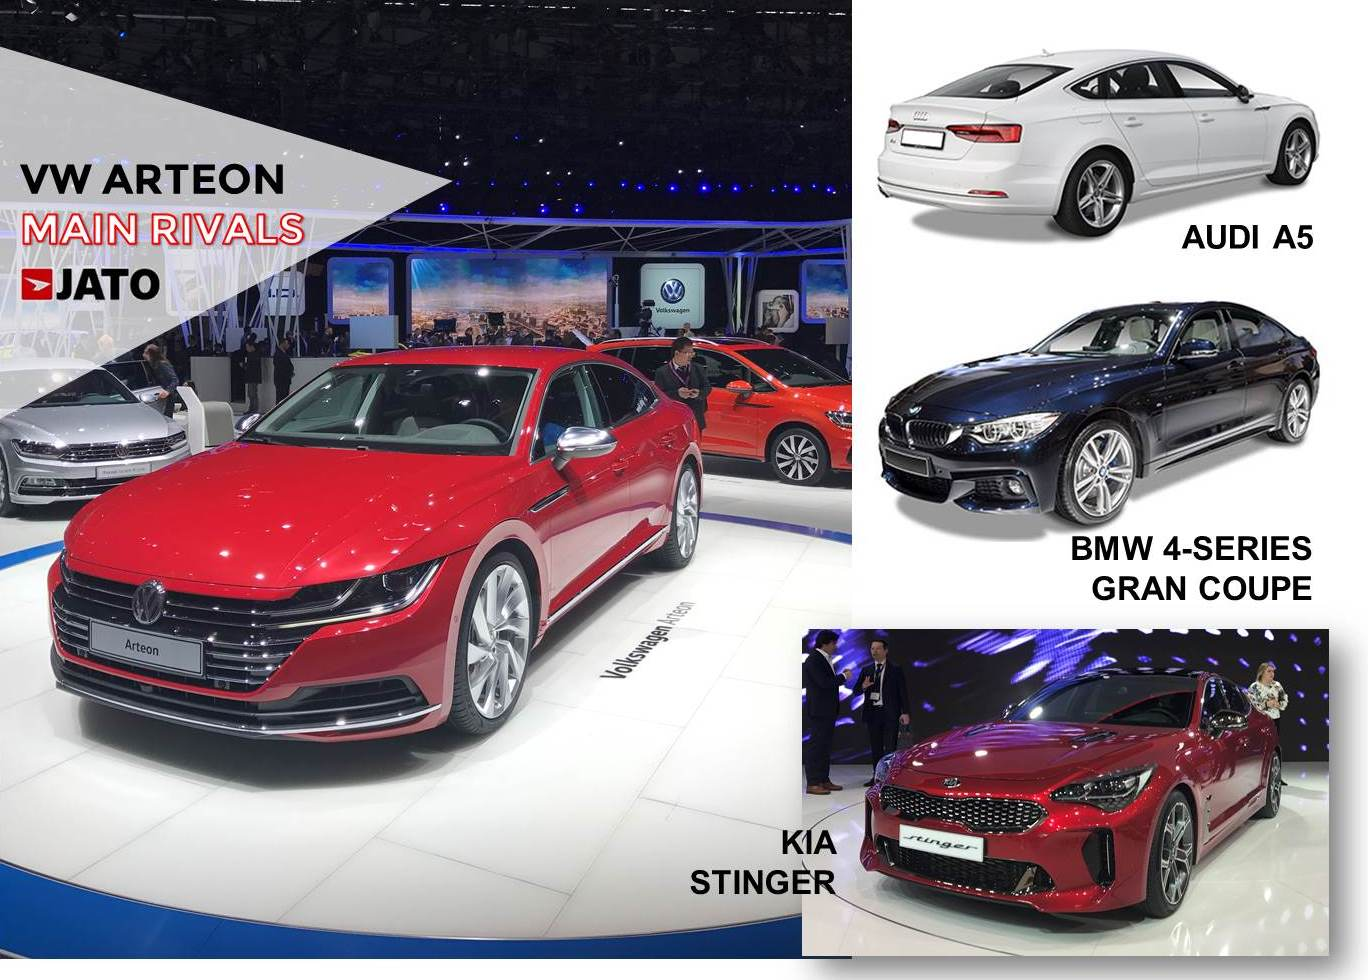 The new VW CC is called Arteon. Even if the market doesn't show big interest for this kind of cars, VW aims to target the consumers looking for a sporty family car, leaving the big mainstream clients to the Passat. As it is not a premium choice, it is not expected to post the same sales volume as its German competitors.